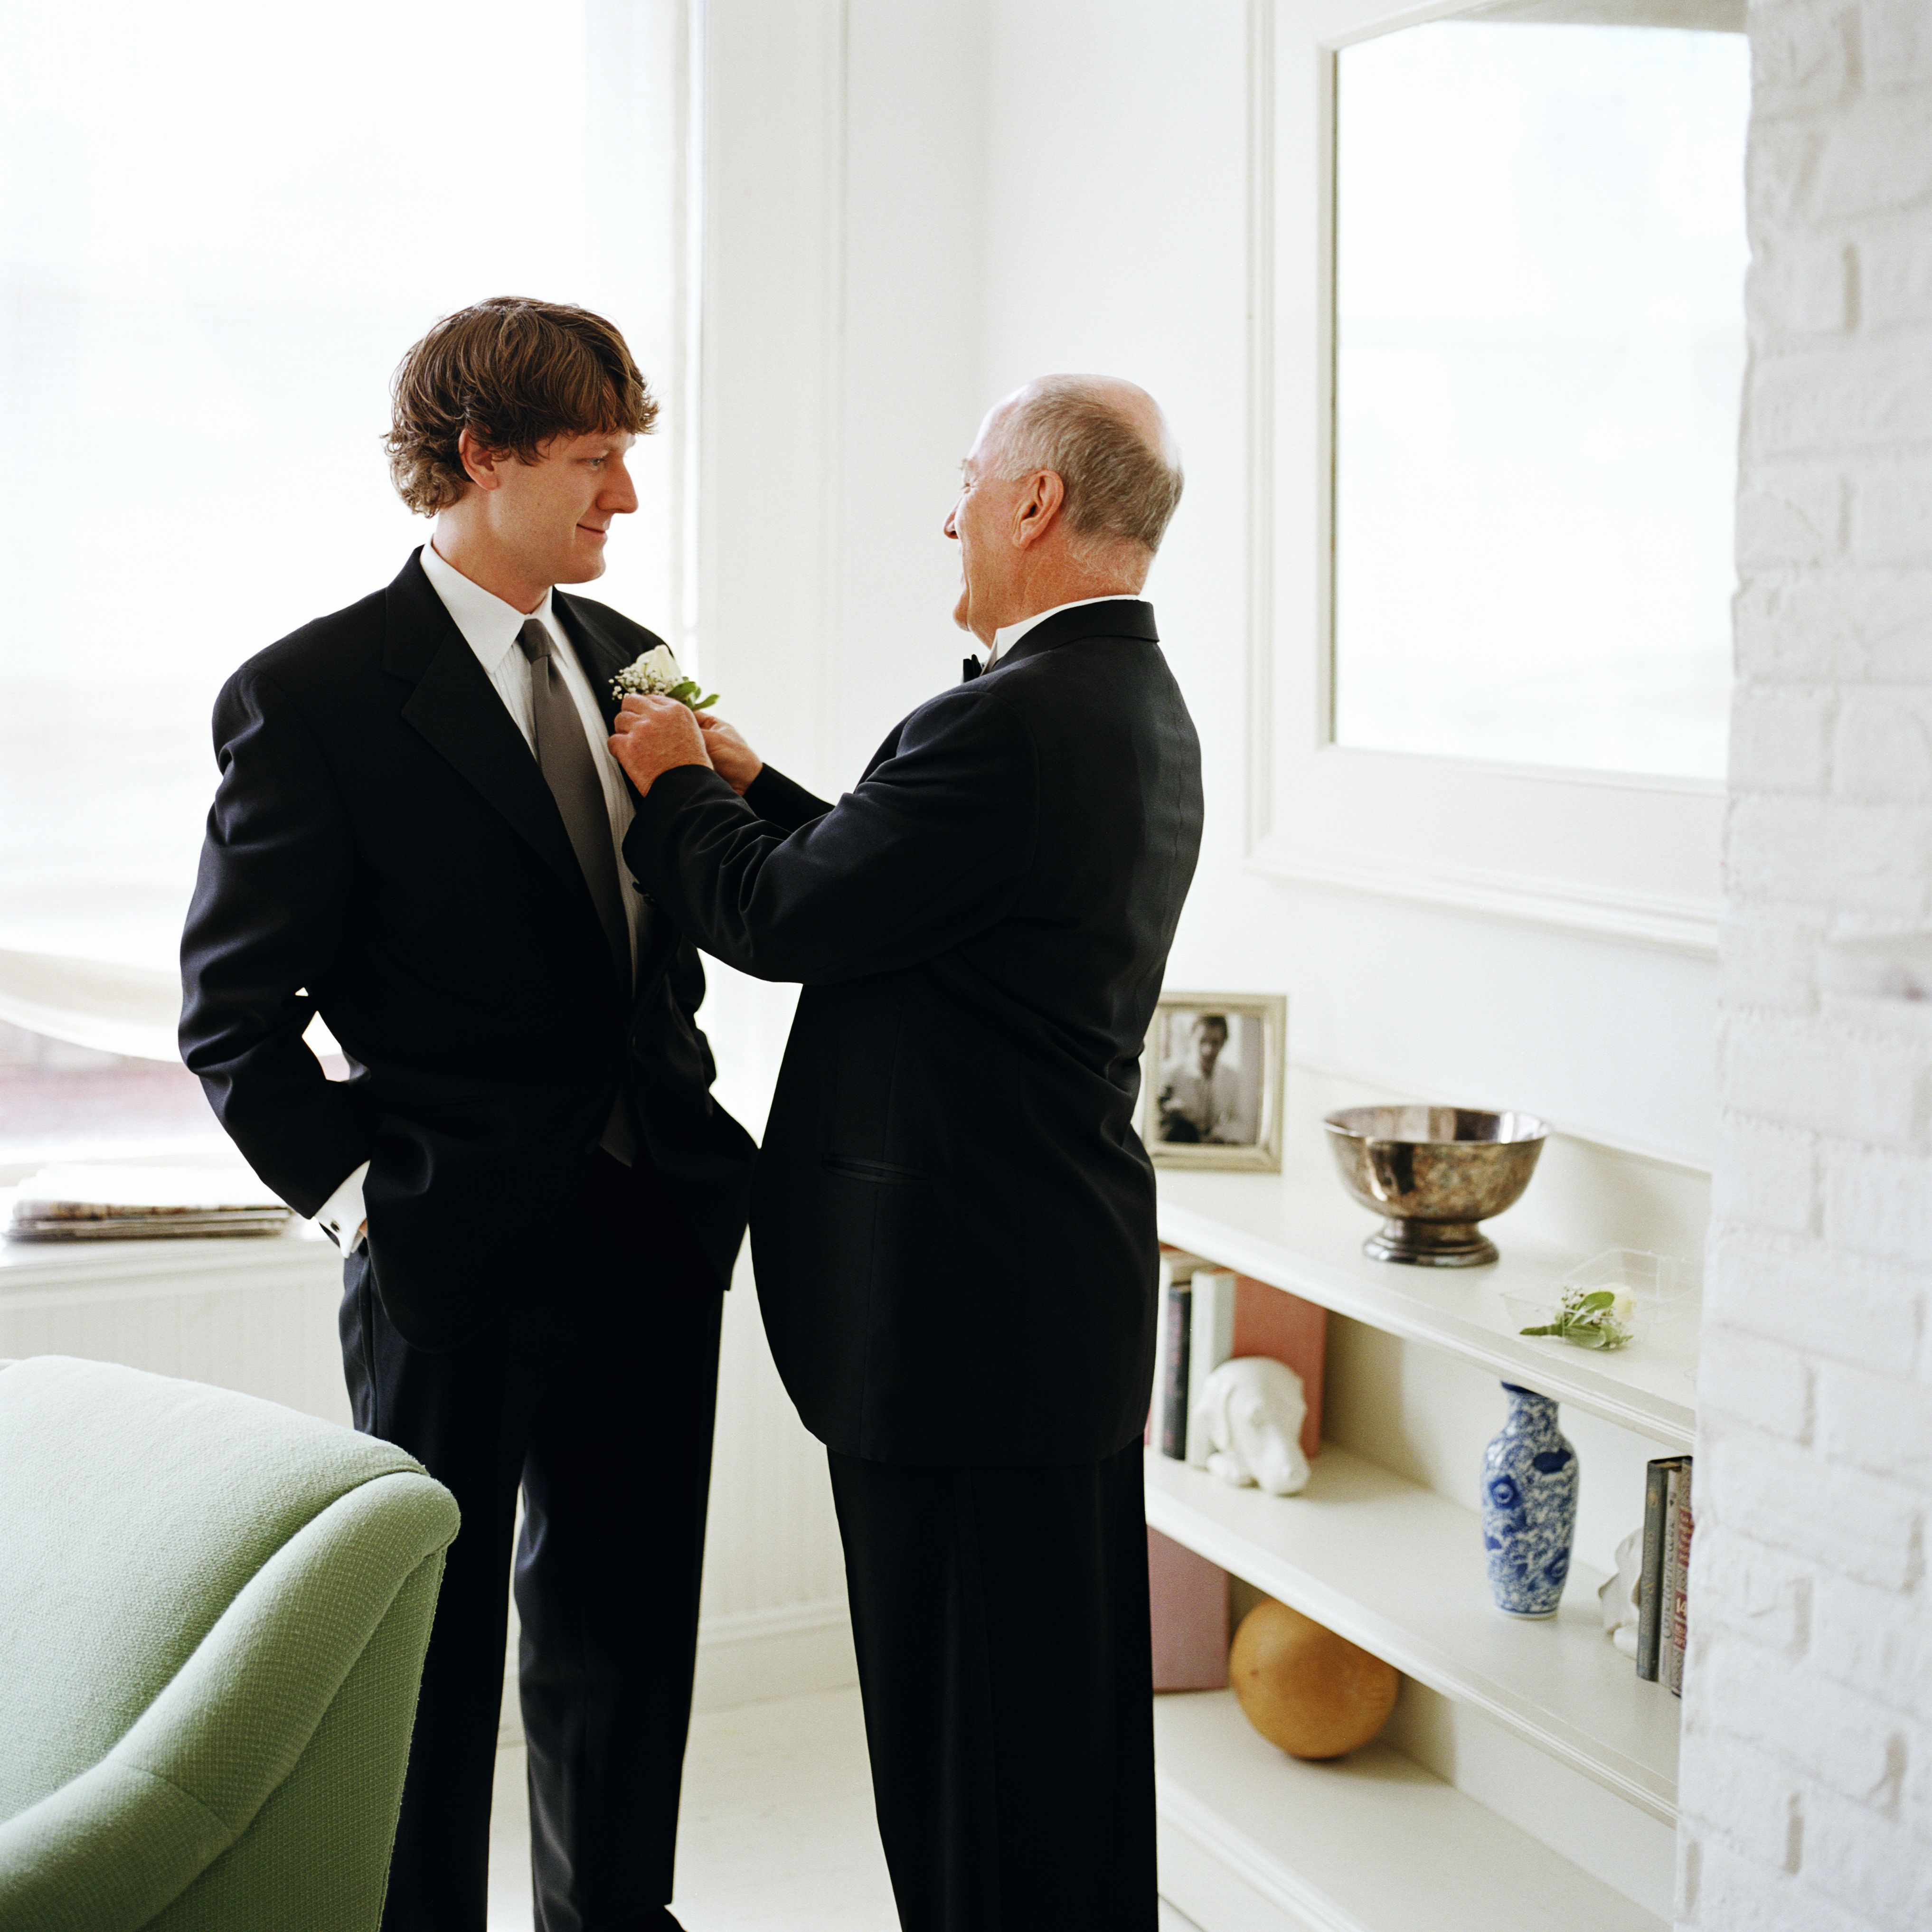 8 Father of the Groom Duties and Responsibilities for the Wedding